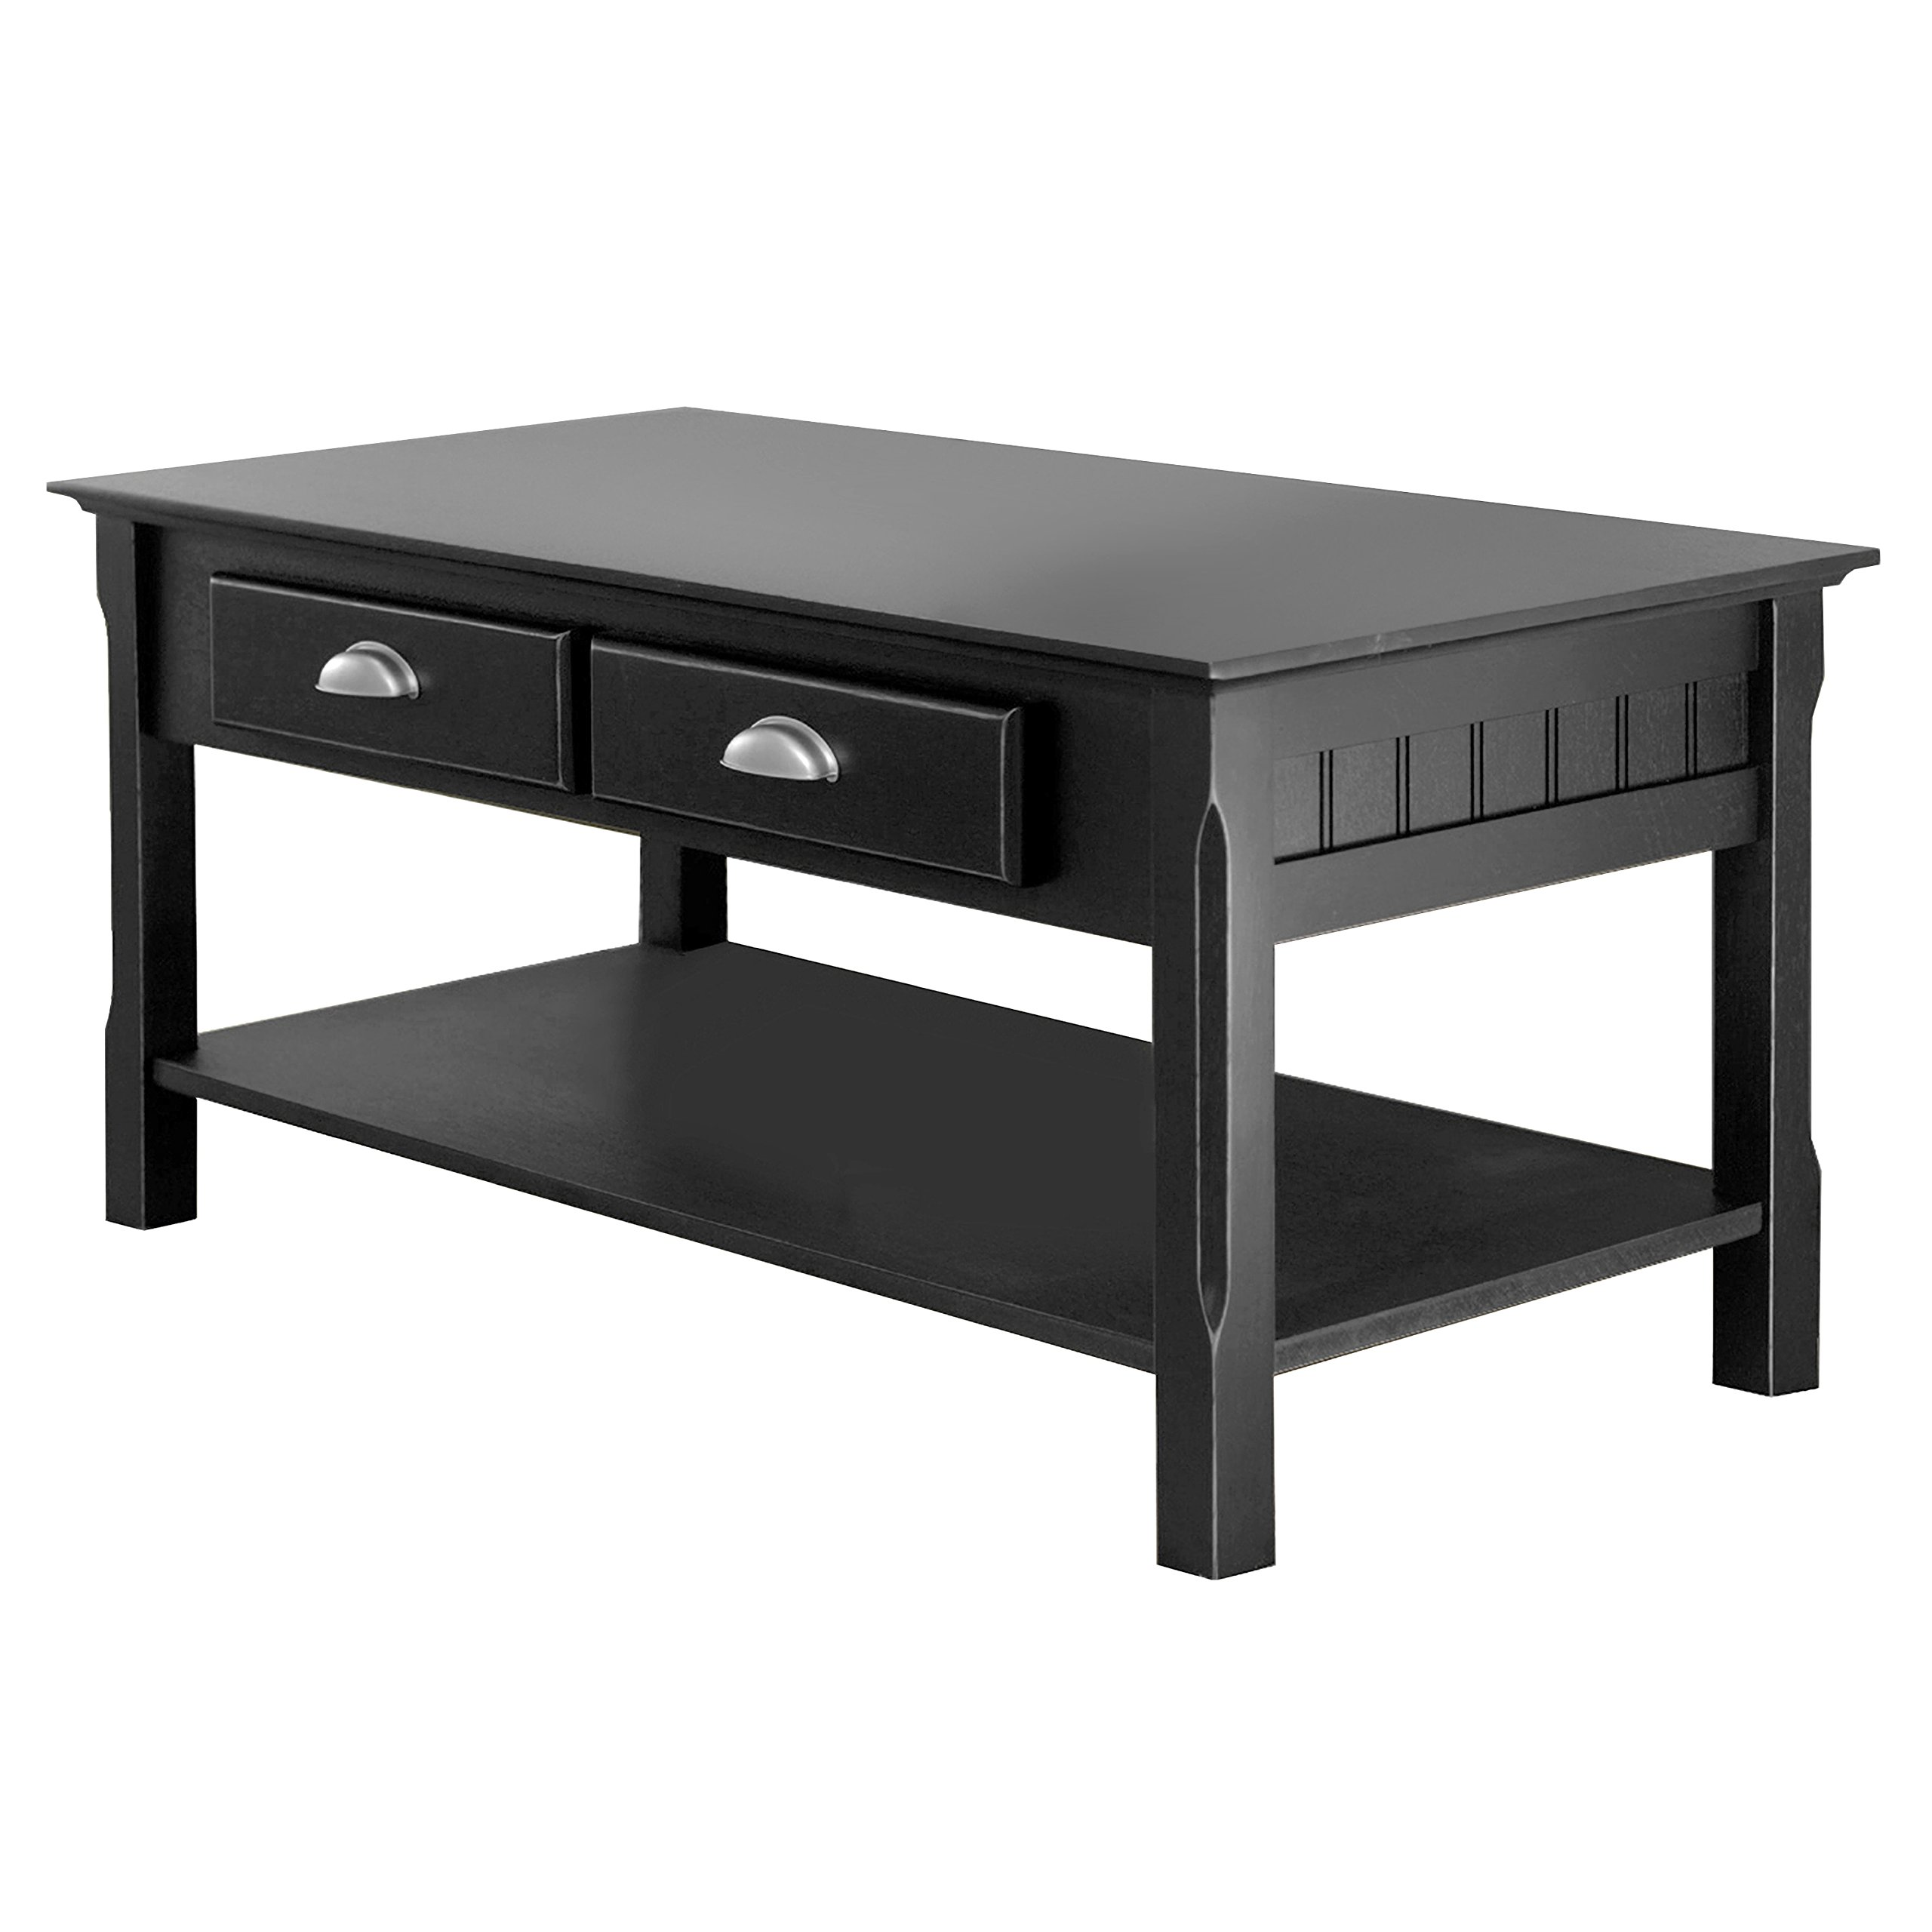 Winsome Timber Occasional Table, Black by Winsome